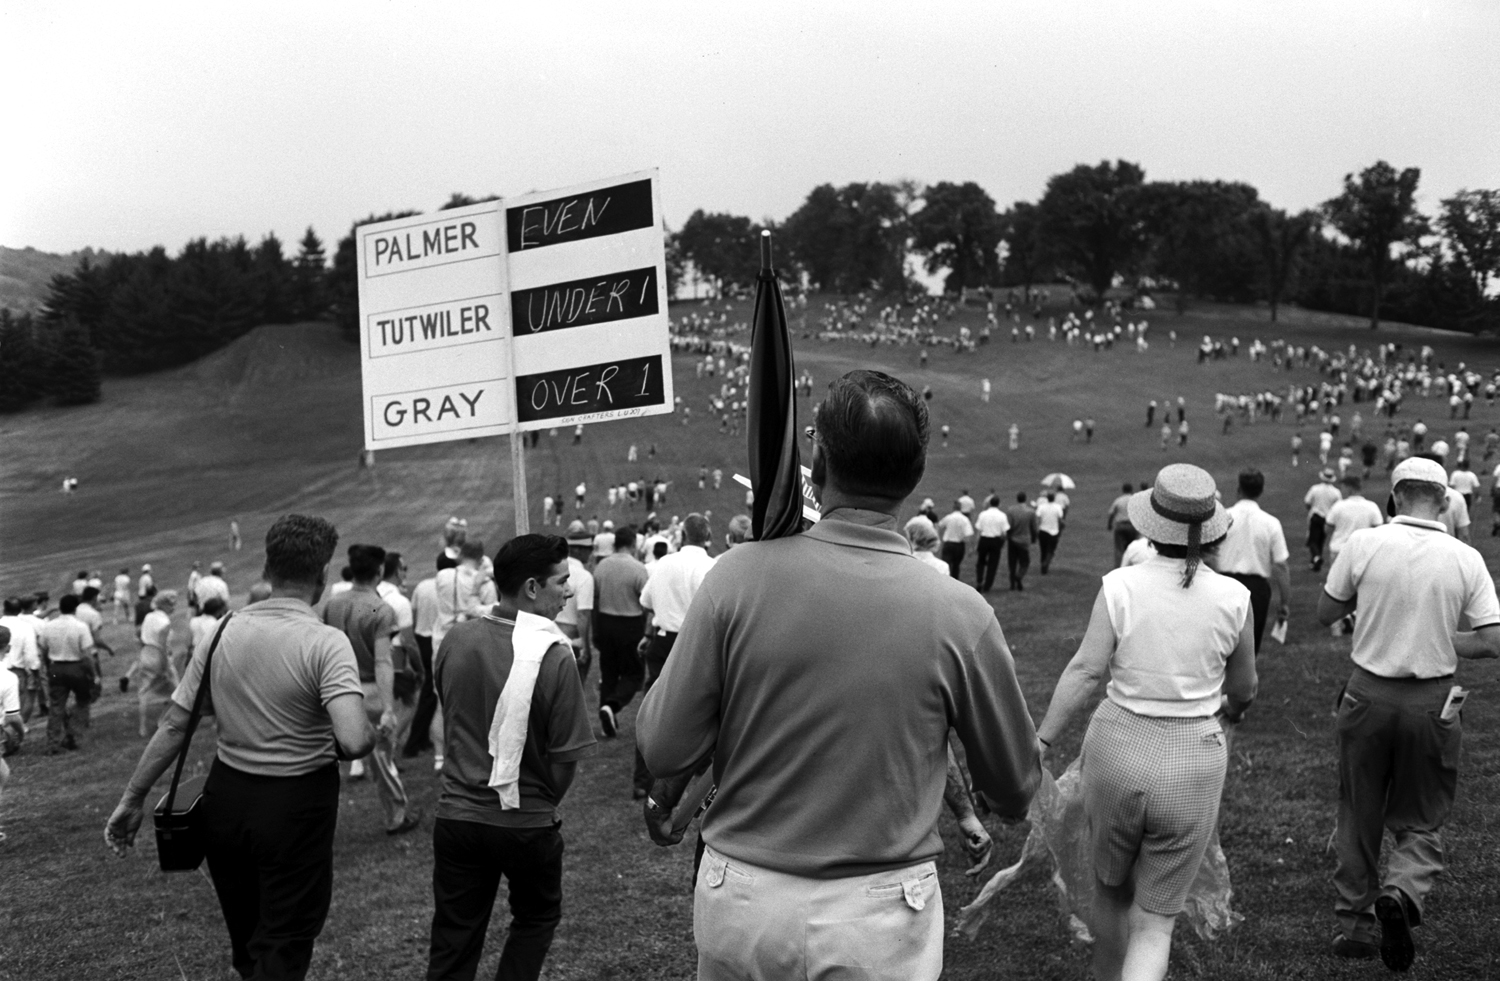 Crowd following Arnold Palmer, 1962.